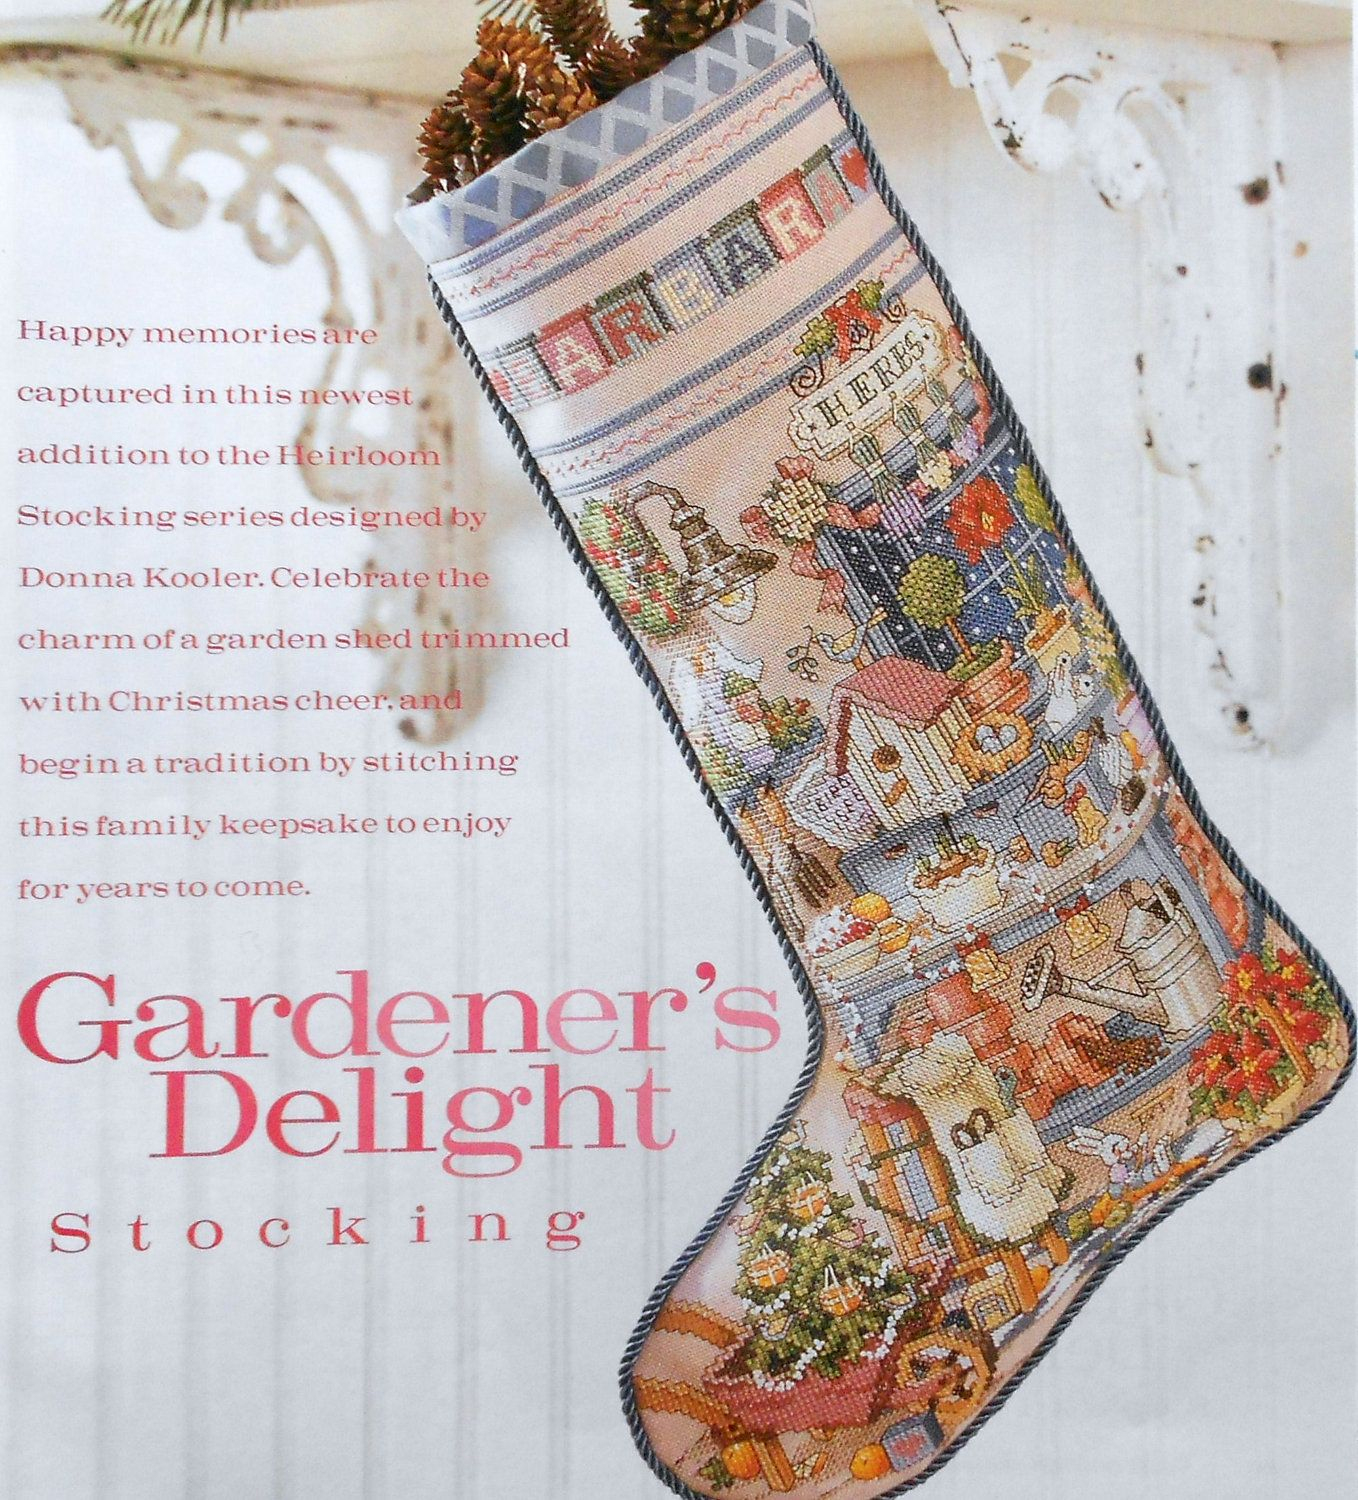 Free Cross Stitch Christmas Stocking Patterns - Google Search - Free Printable Cross Stitch Christmas Stocking Patterns